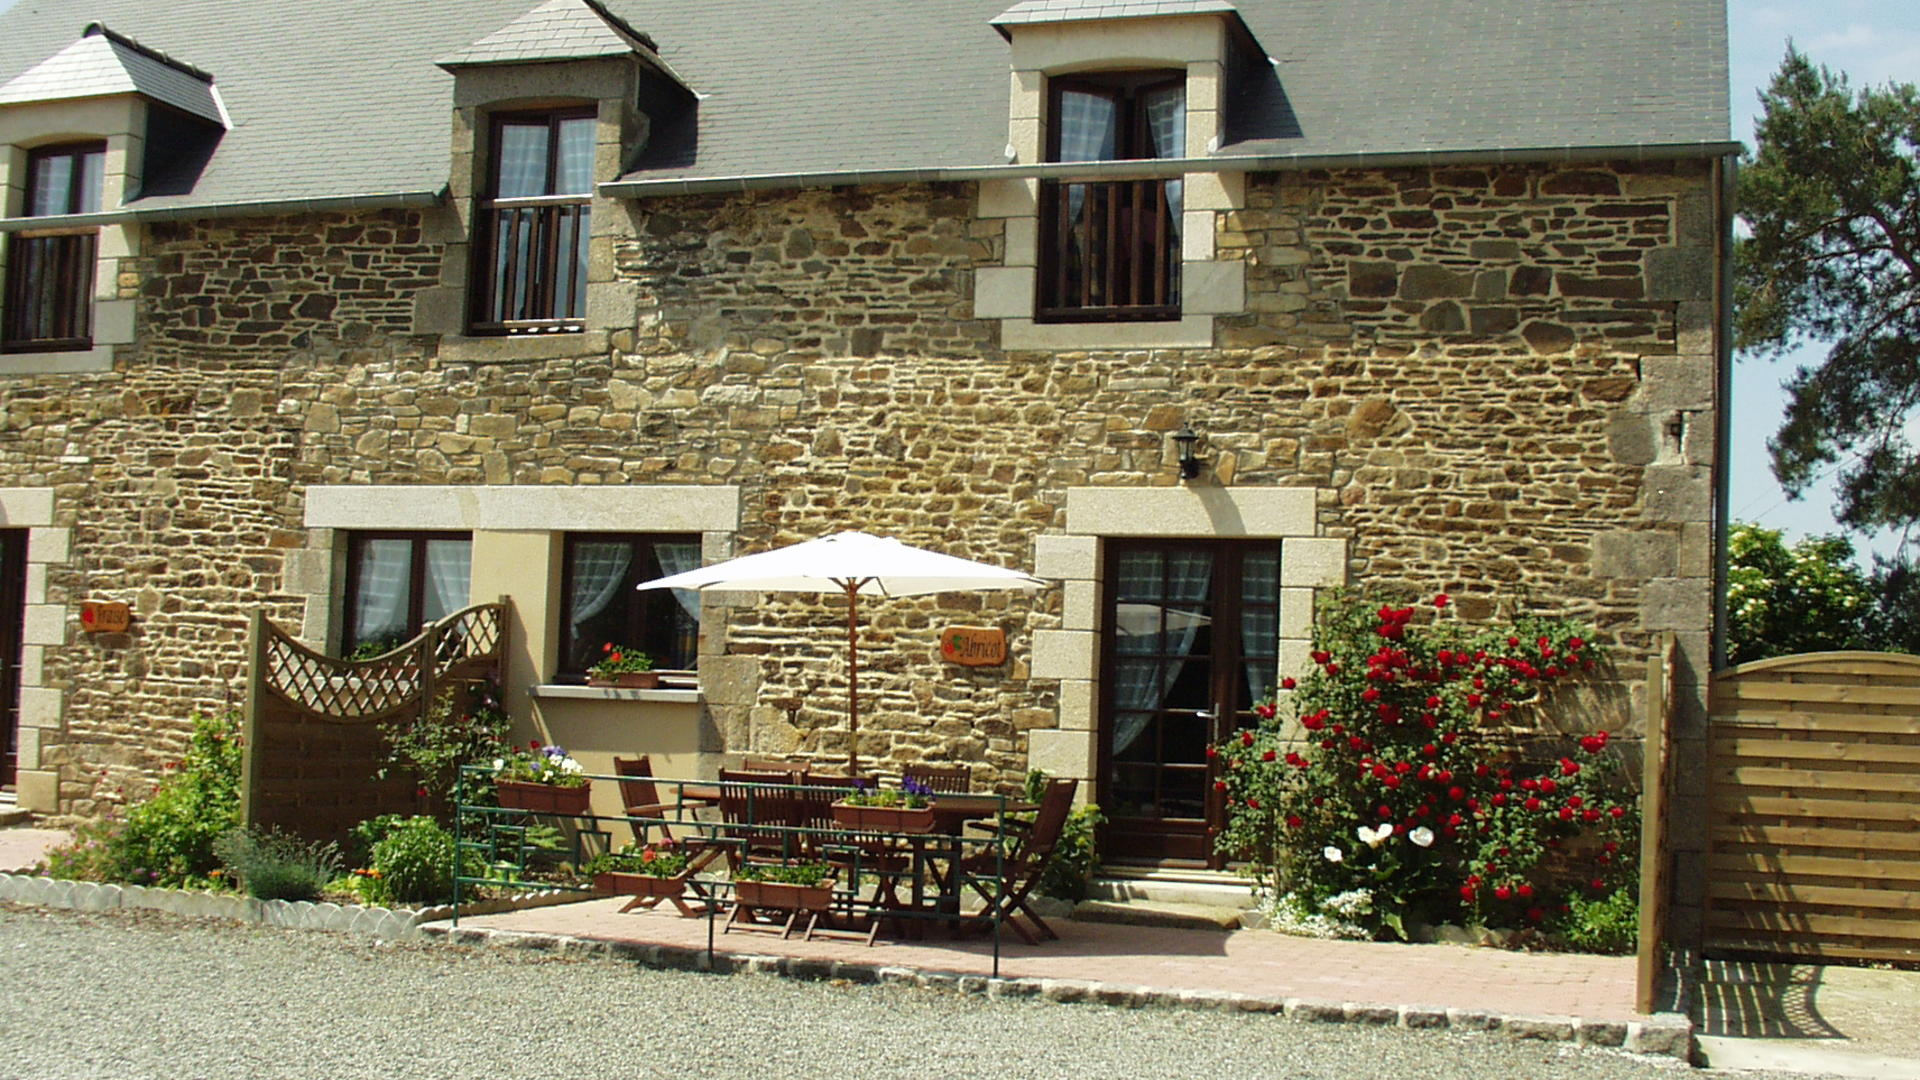 3 bedroom family friendly holiday cottage in Brittany – CHA